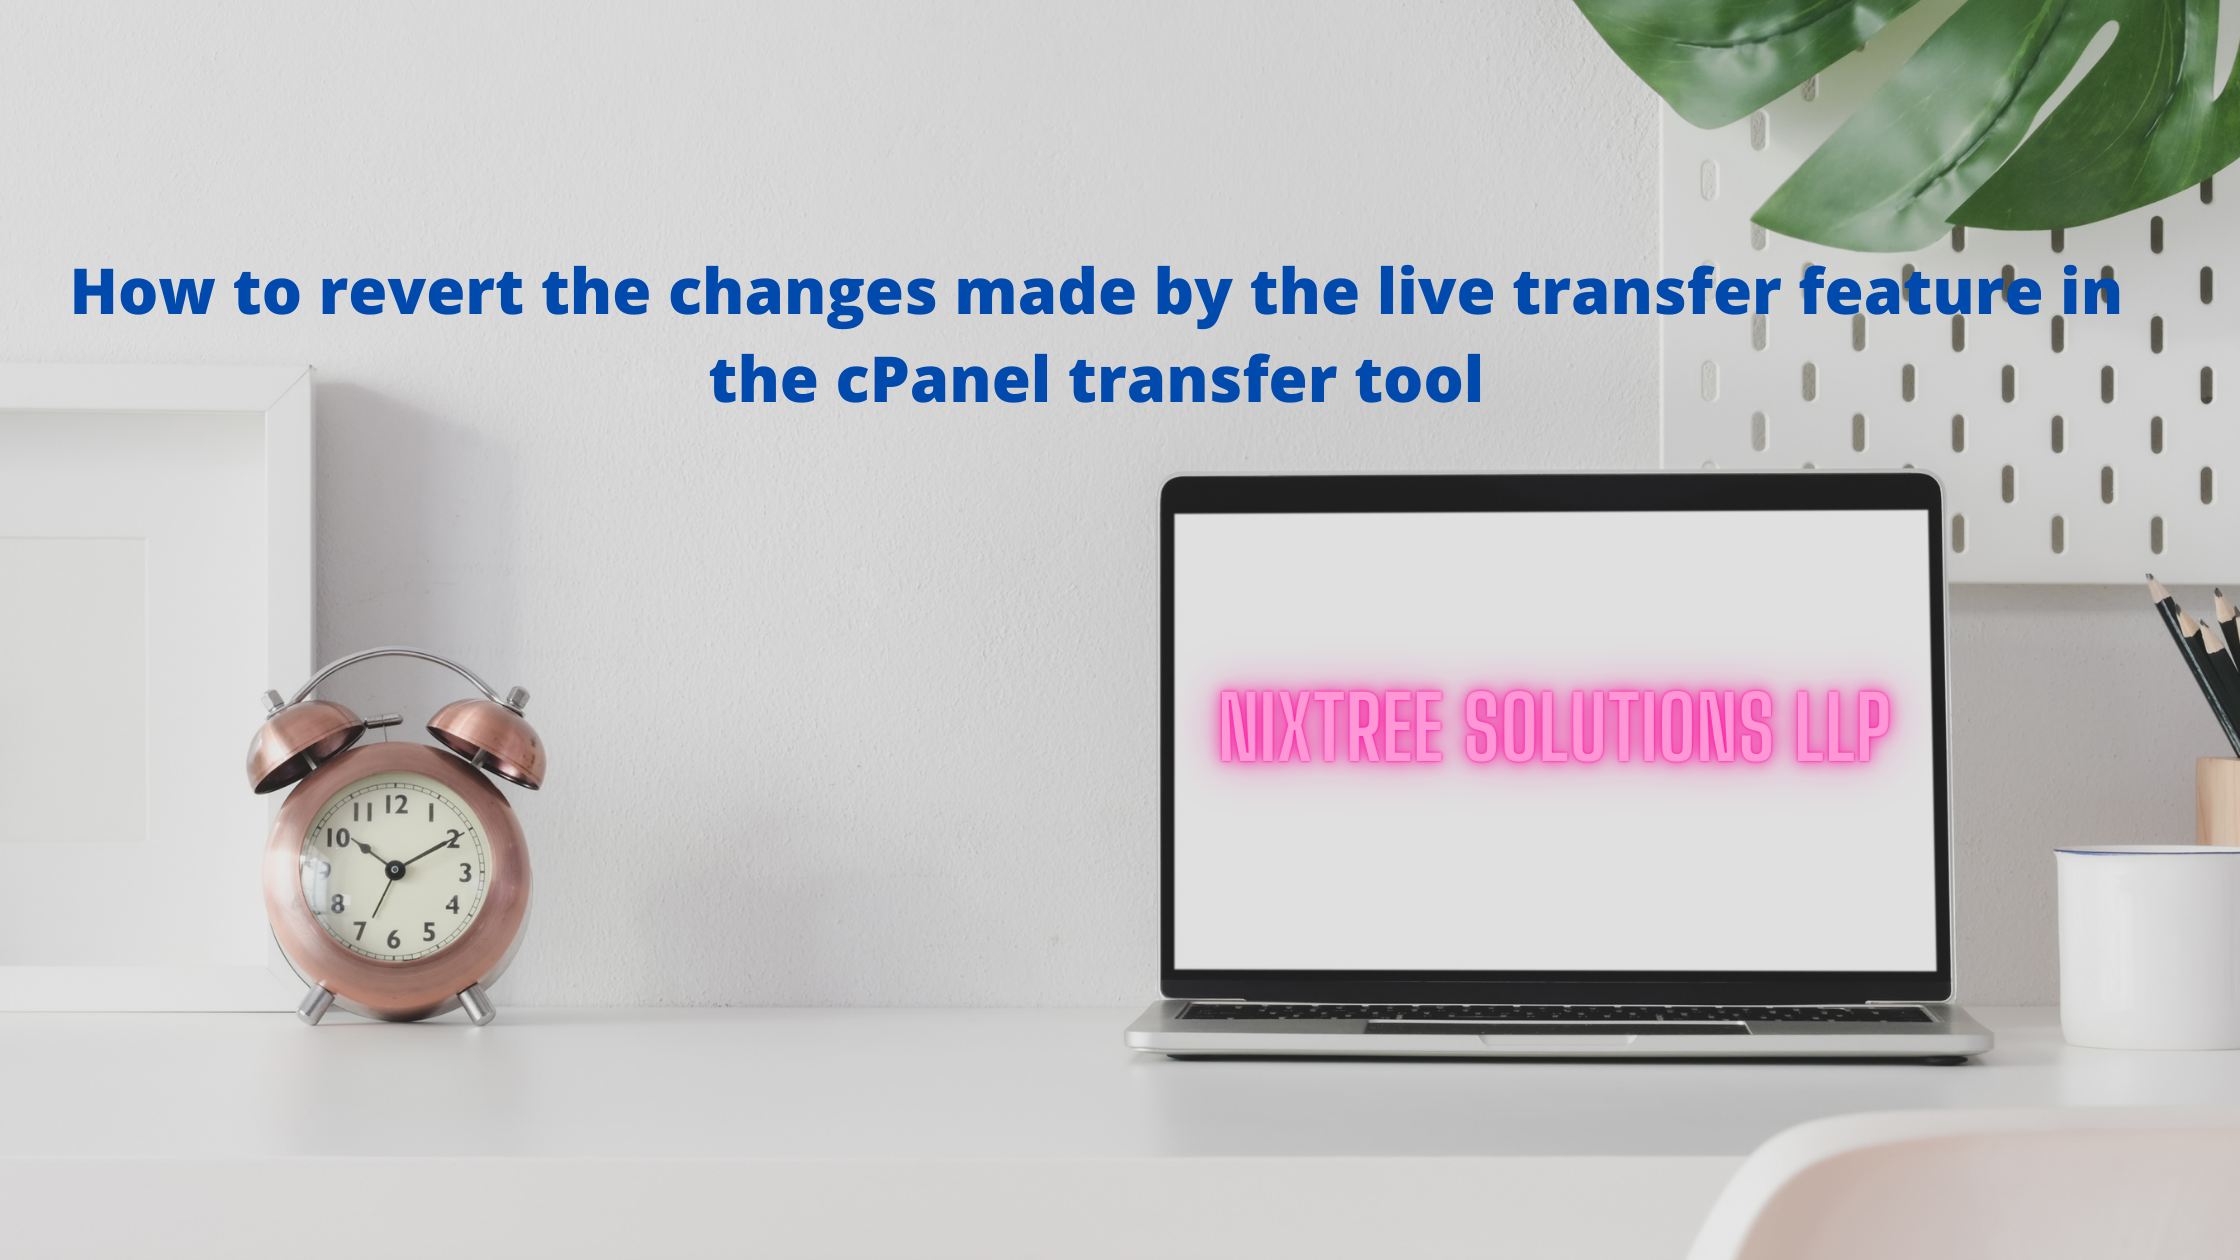 How-to-revert-the-changes-made-by-the-live-transfer-feature-in-the-cPanel-transfer-tool